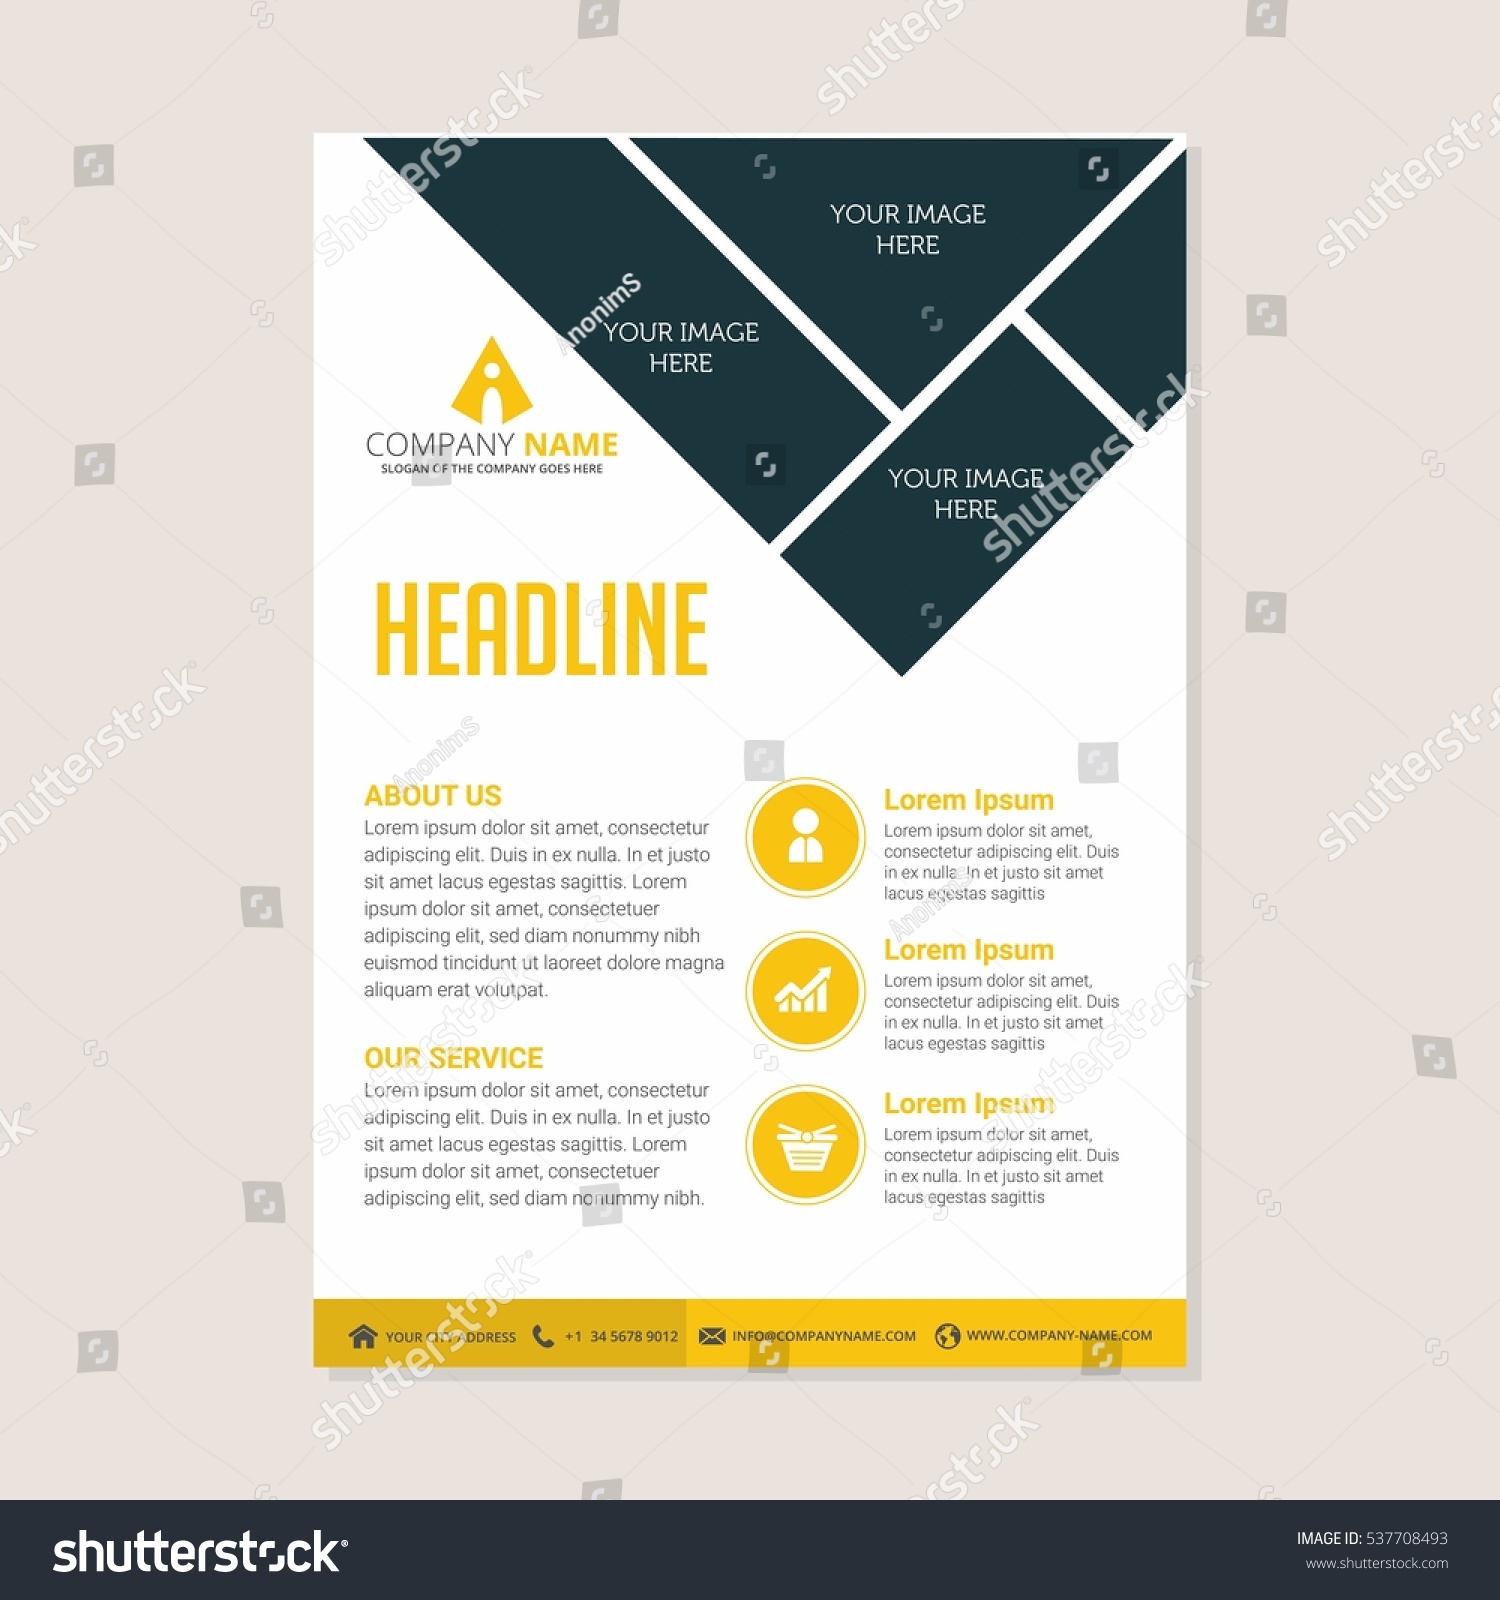 modern creative and clean business flyer design print templates modern creative and clean business flyer design print templates flat style vector illustration